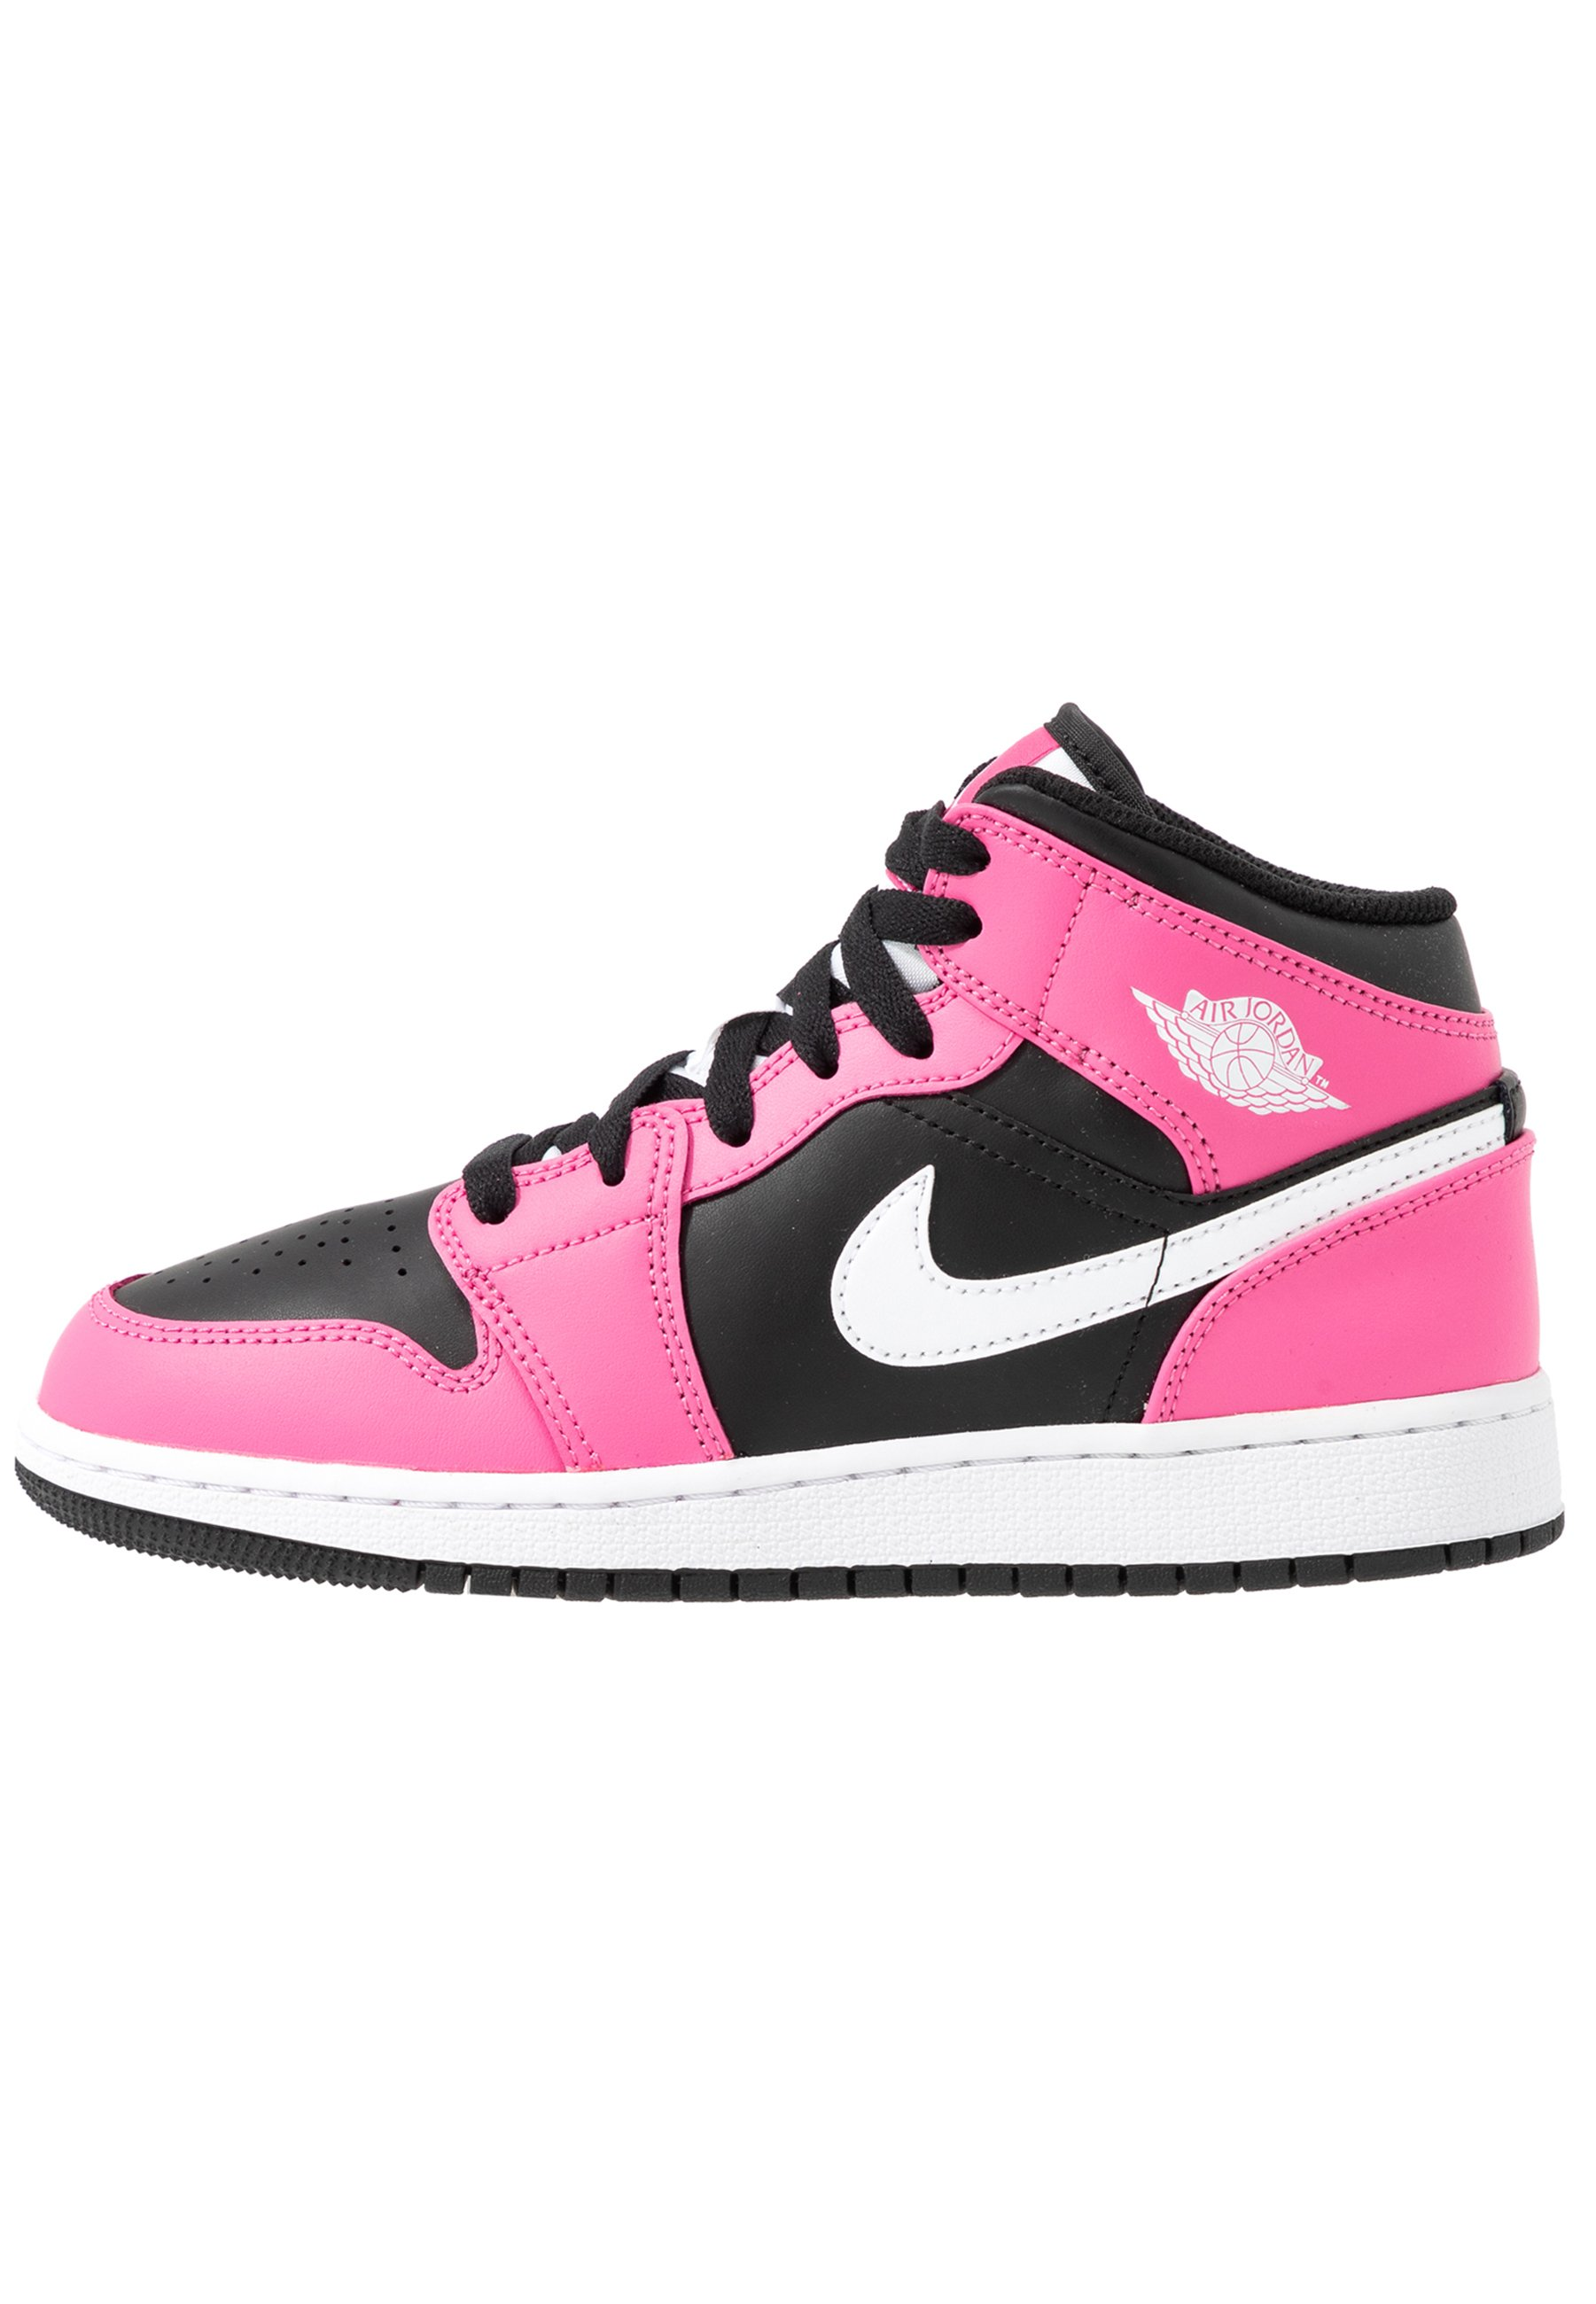 AIR 1 MID UNISEX - Basketball shoes - black/white/pinksicle